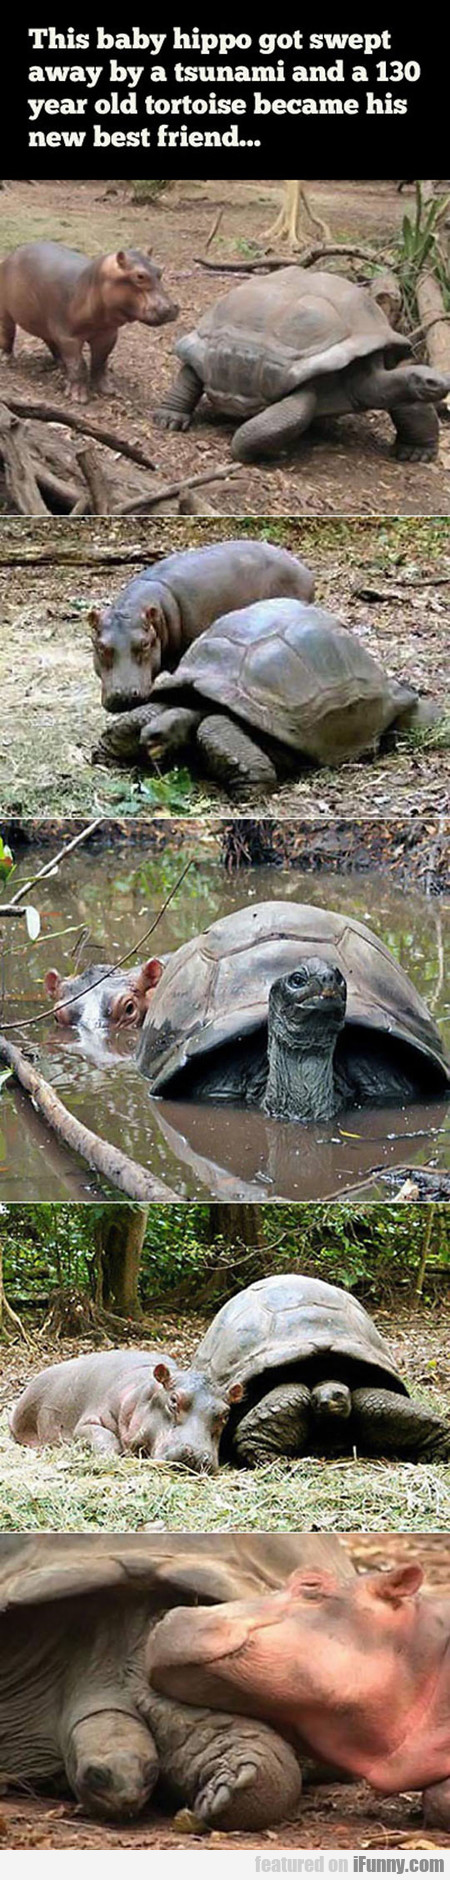 Baby Hippo And 130 Year Old Tortoise Become Friend